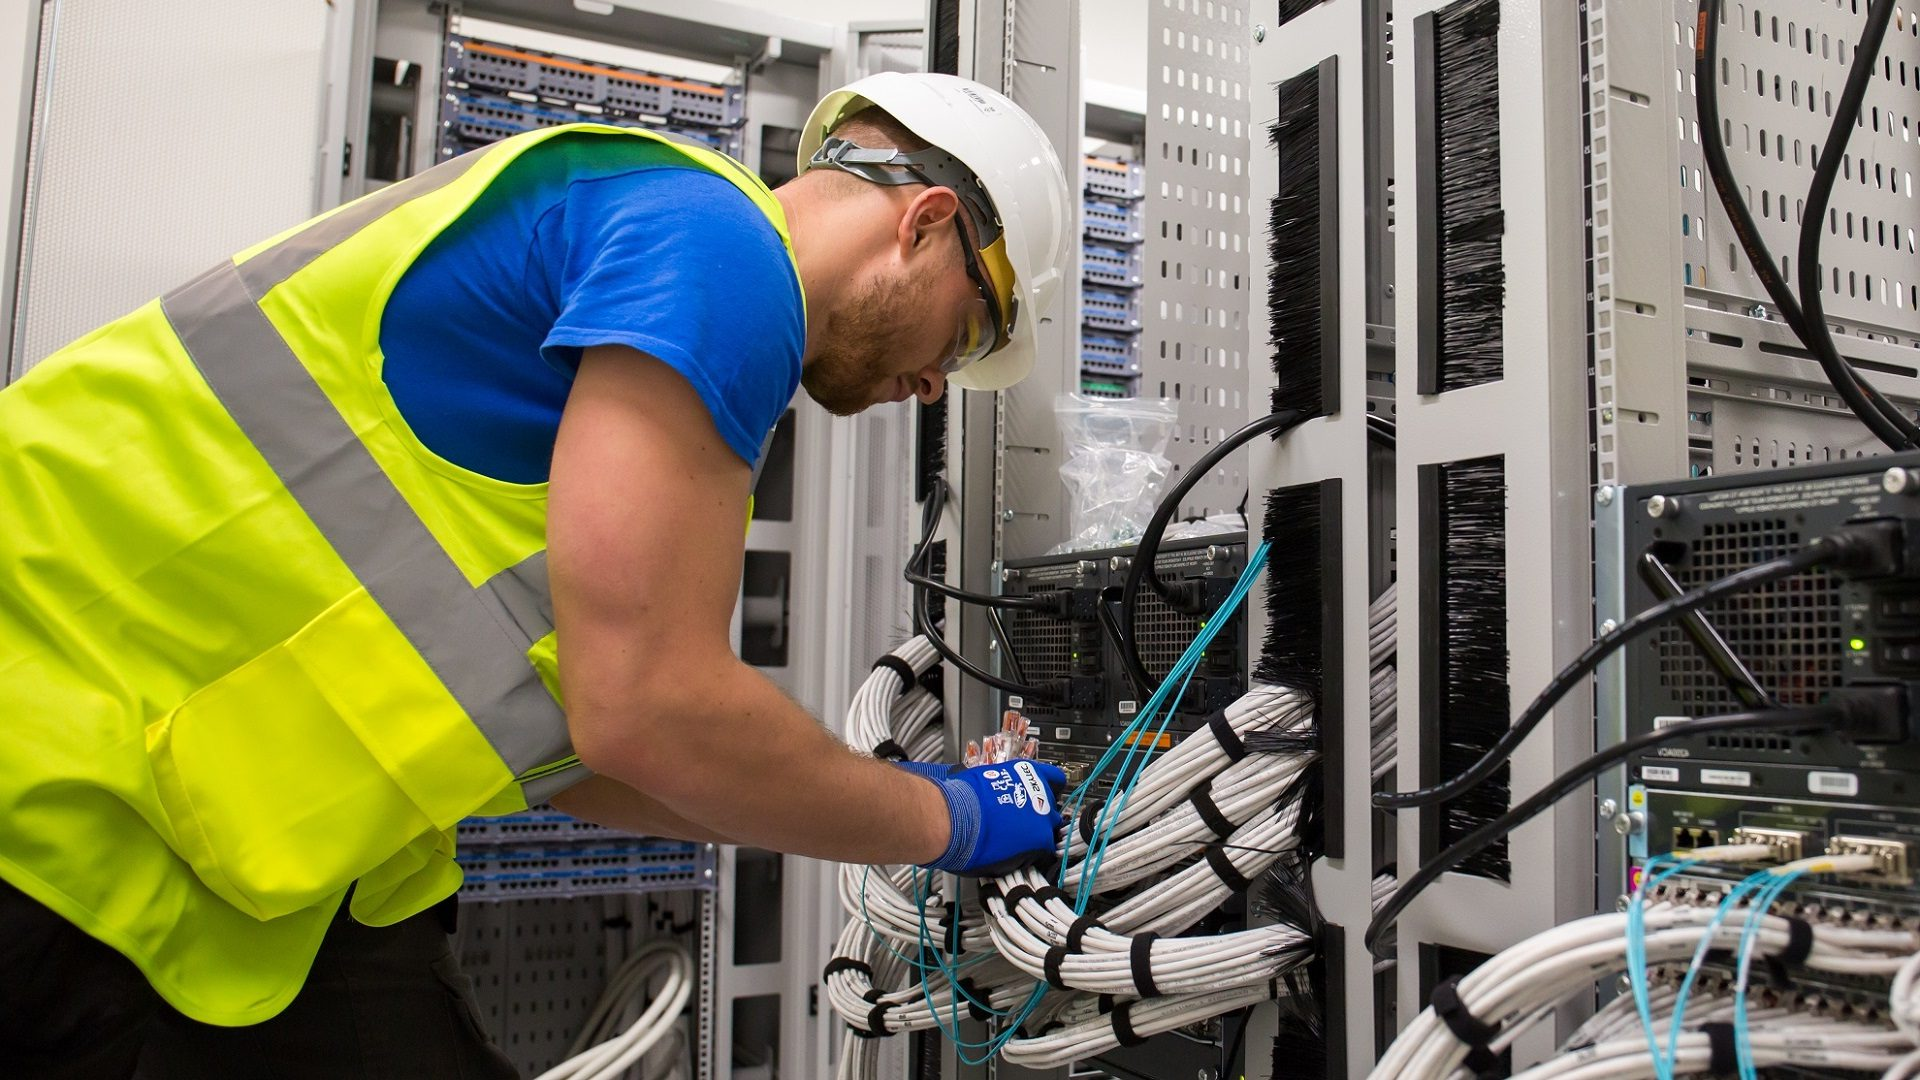 Man wearing high-visibility vest and hard hat installing networking cable in a commercial building.